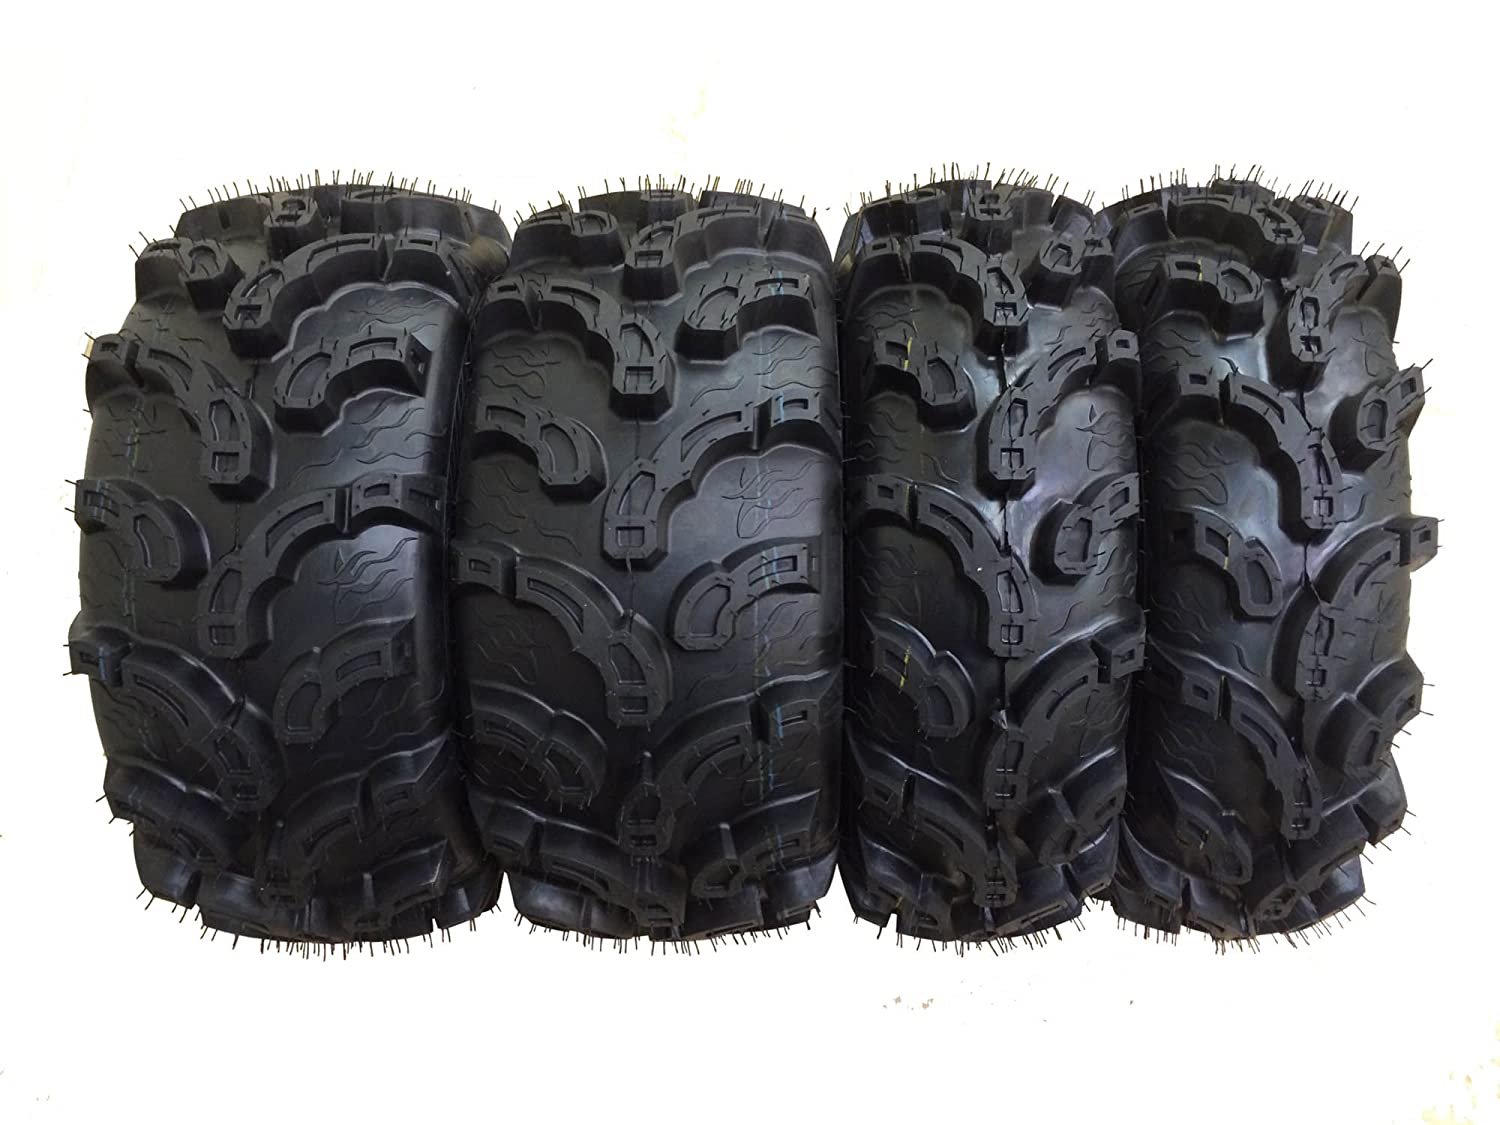 Set of 4 New Premium WANDA ATV/UTV Tires 27x9-12 Front & 27x12-12 Rear /6PR P375 10219/10220